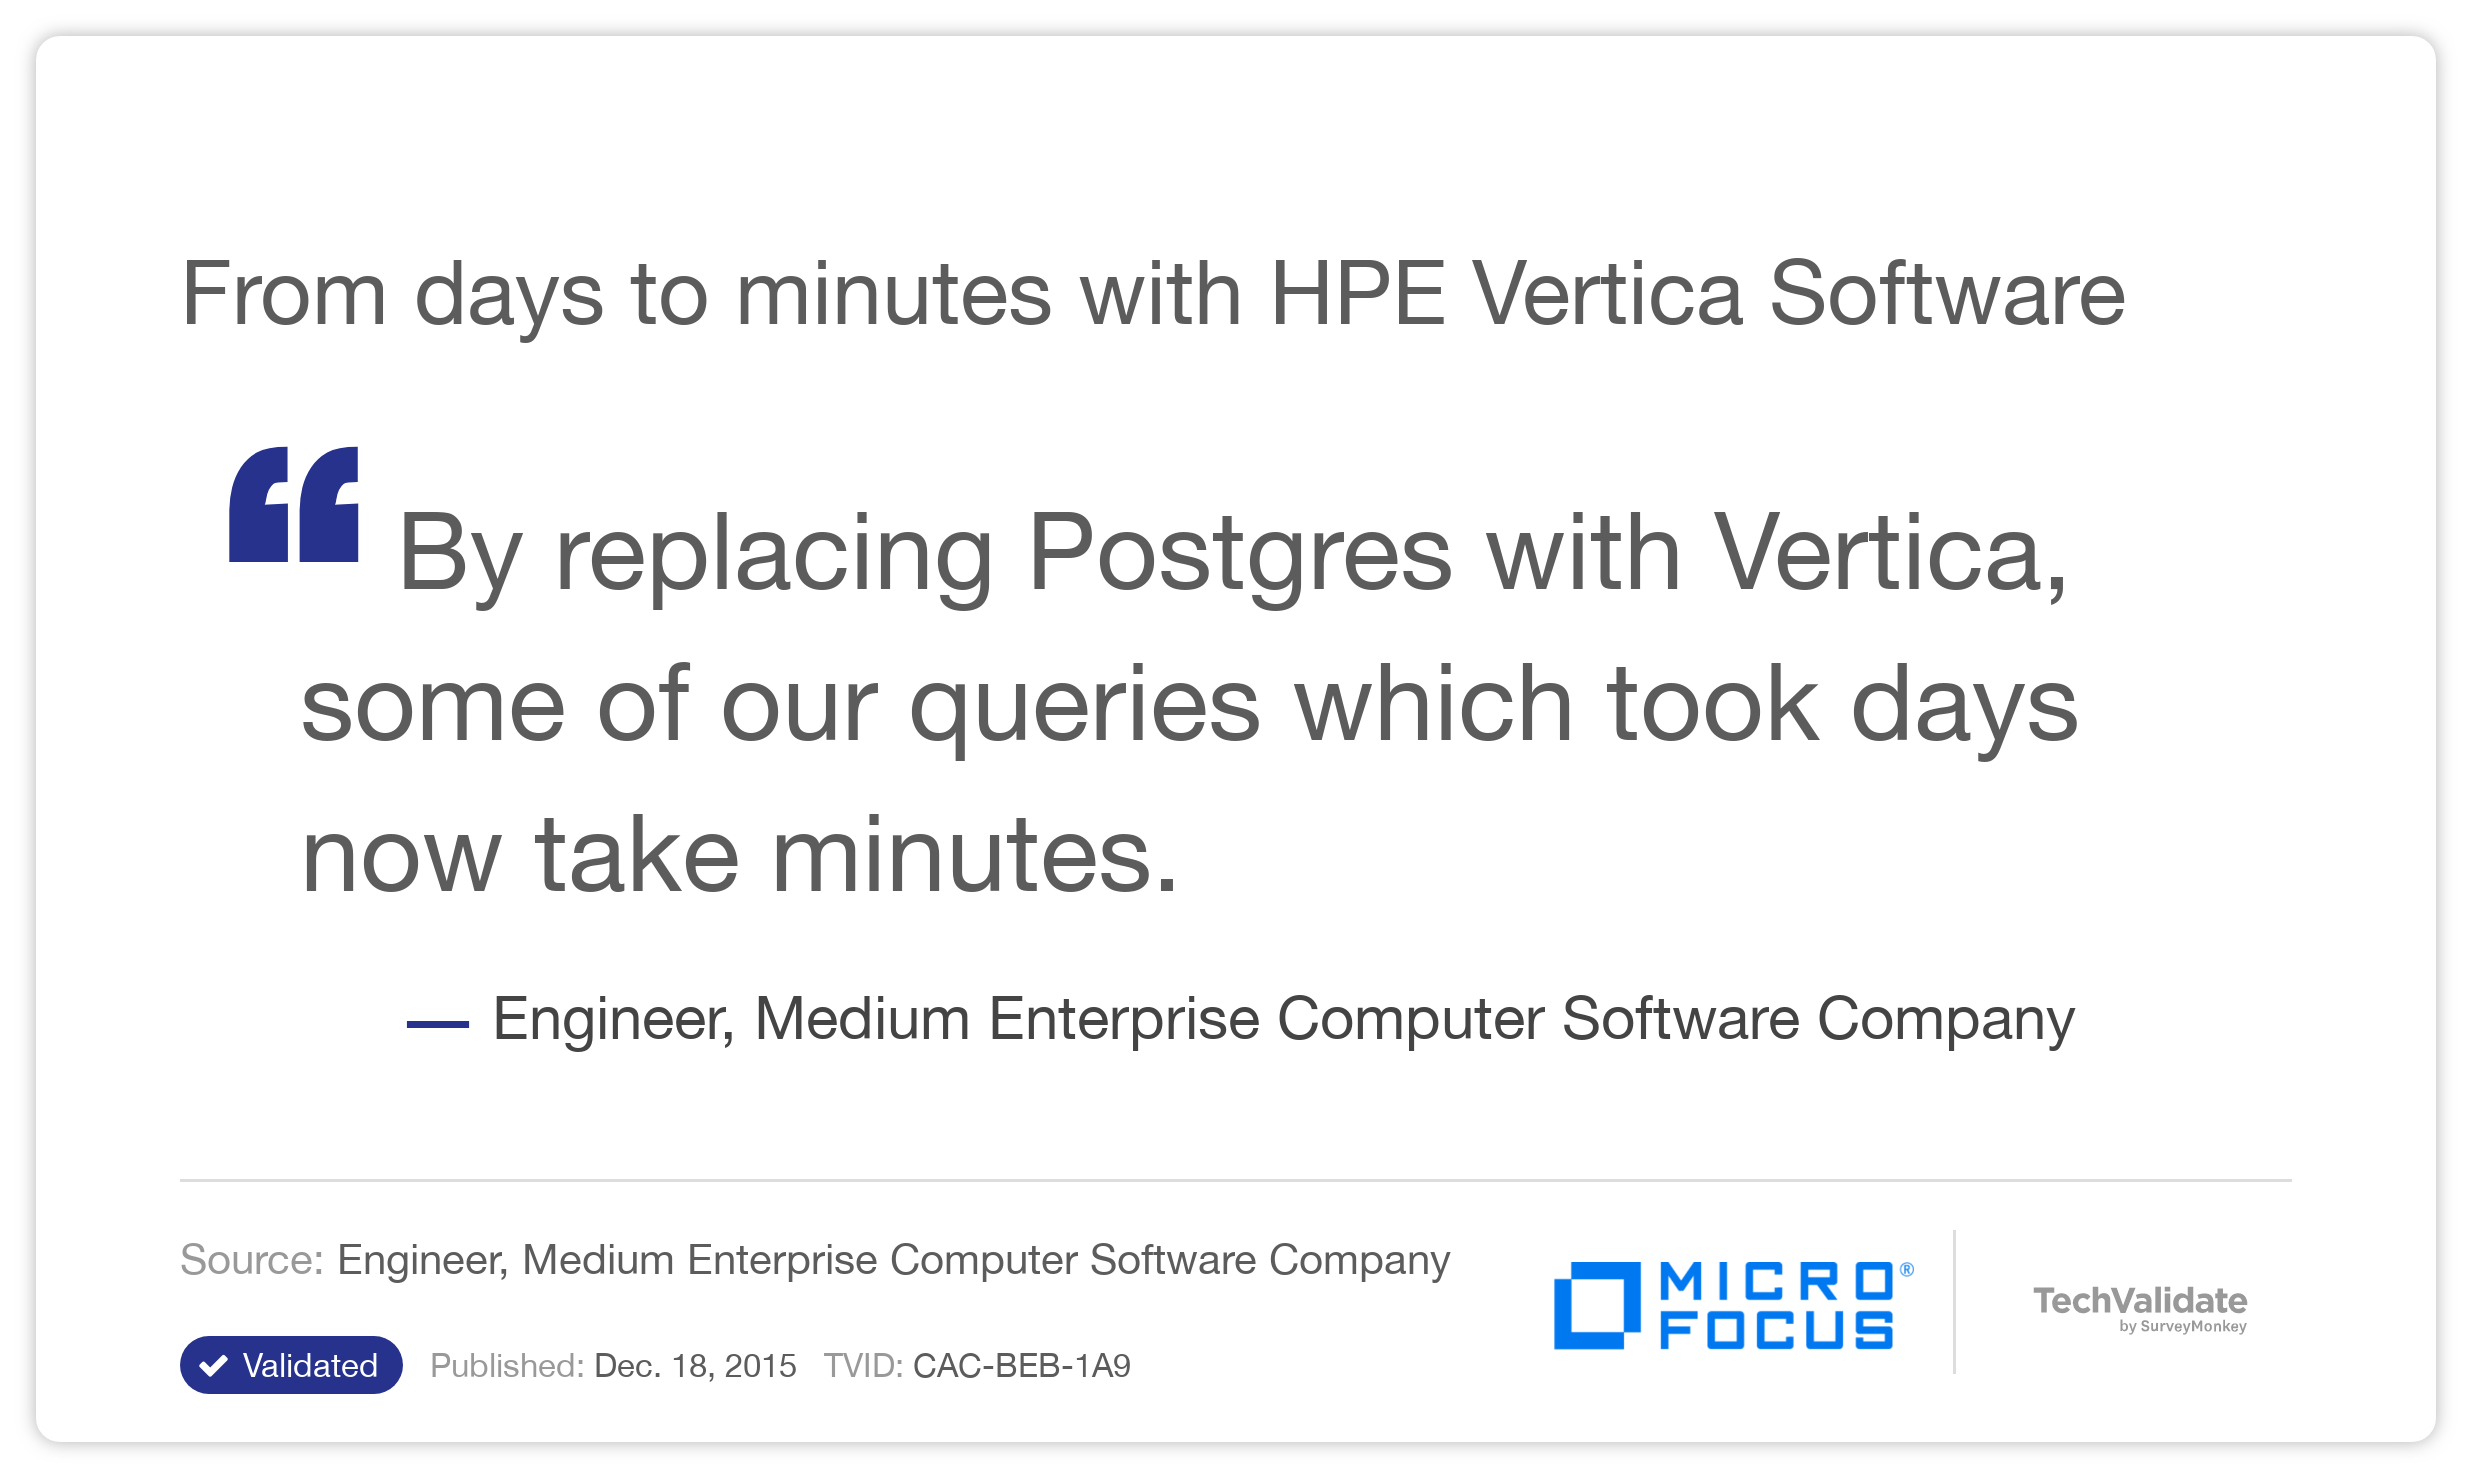 From days to minutes with HP Vertica Software